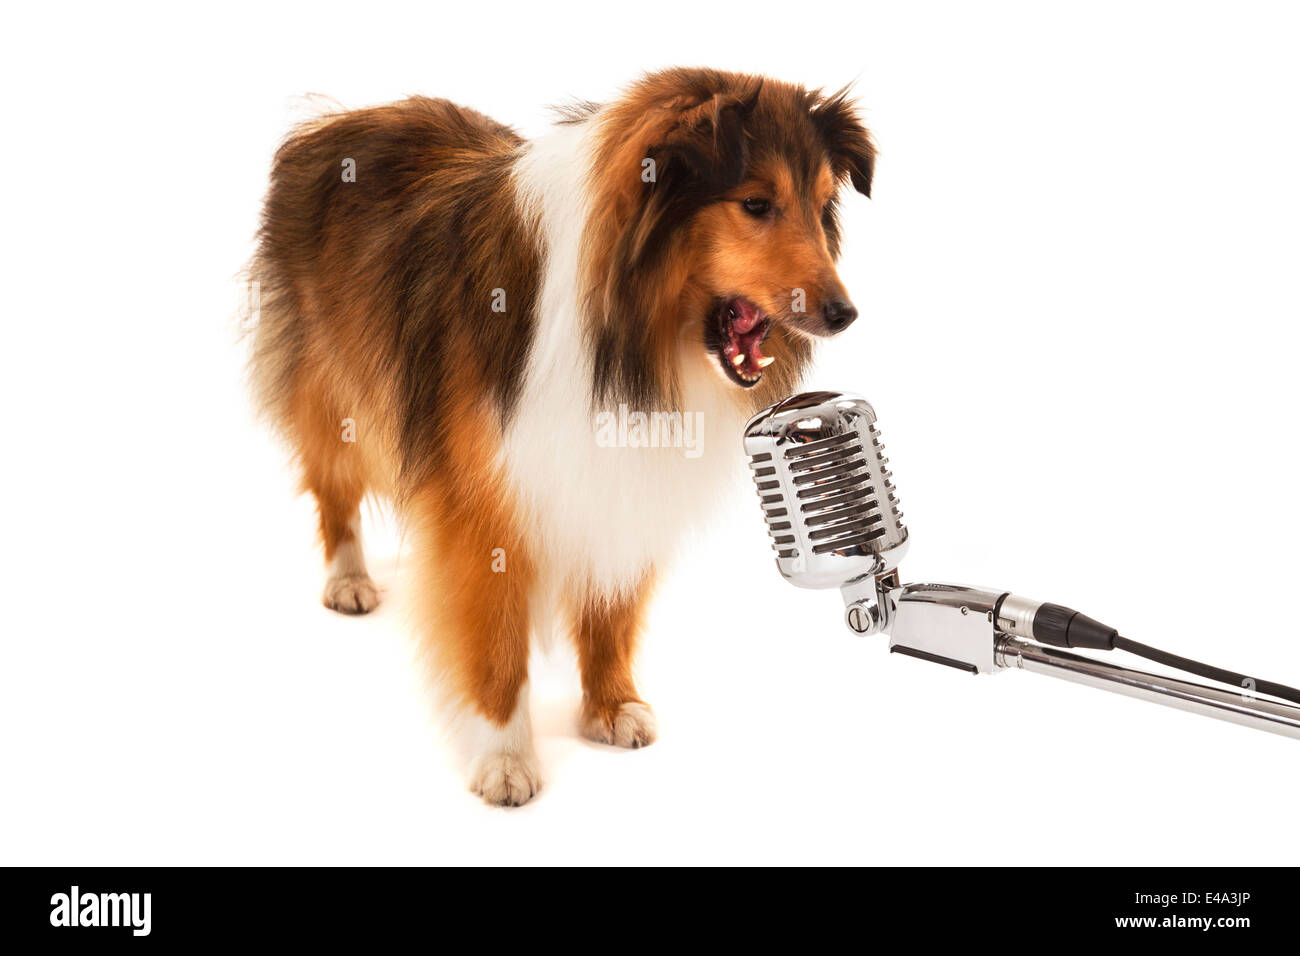 Portrait of dog singing on vintage microphone isolated over white background - Stock Image